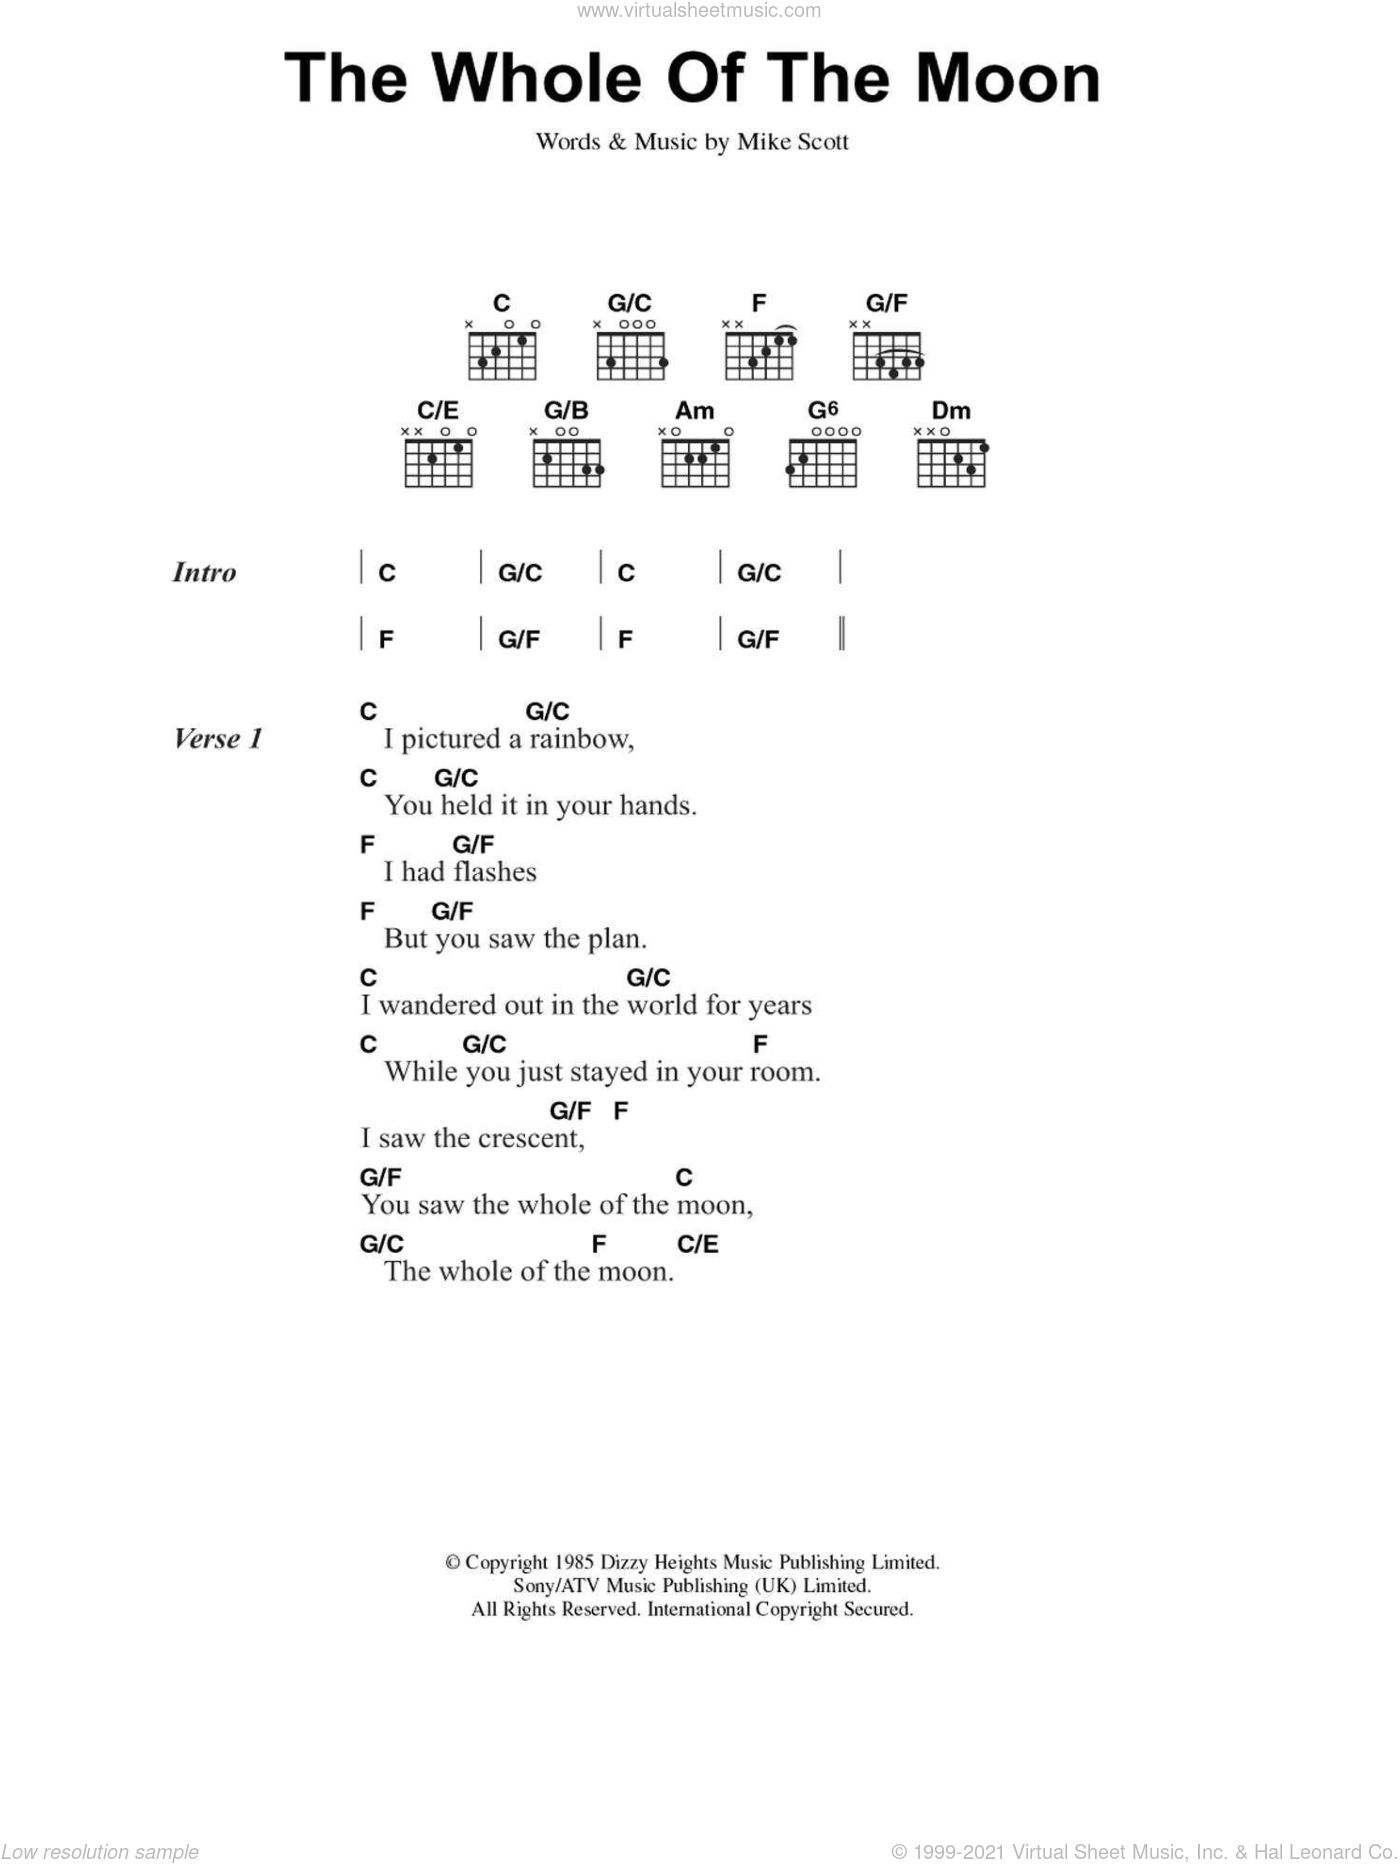 The Whole Of The Moon sheet music for guitar (chords, lyrics, melody) by Mike Scott